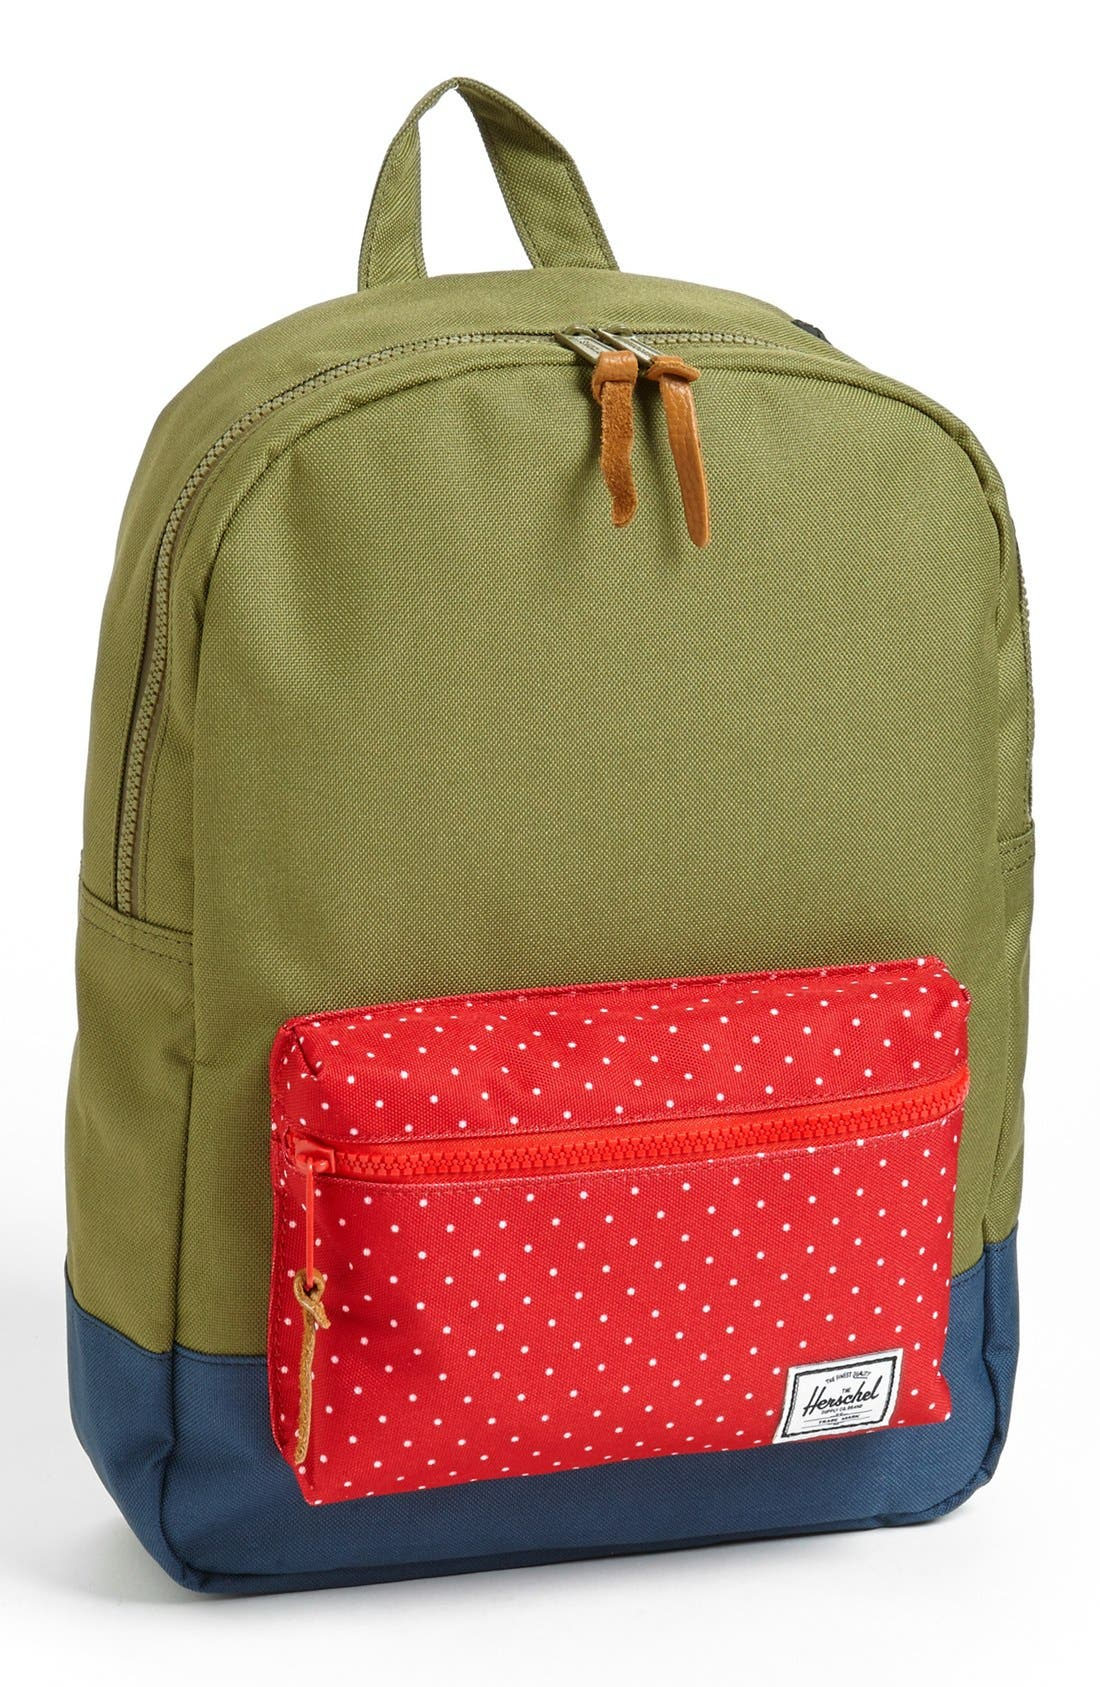 Main Image - Herschel Supply Co. 'Settlement' Backpack (Girls)